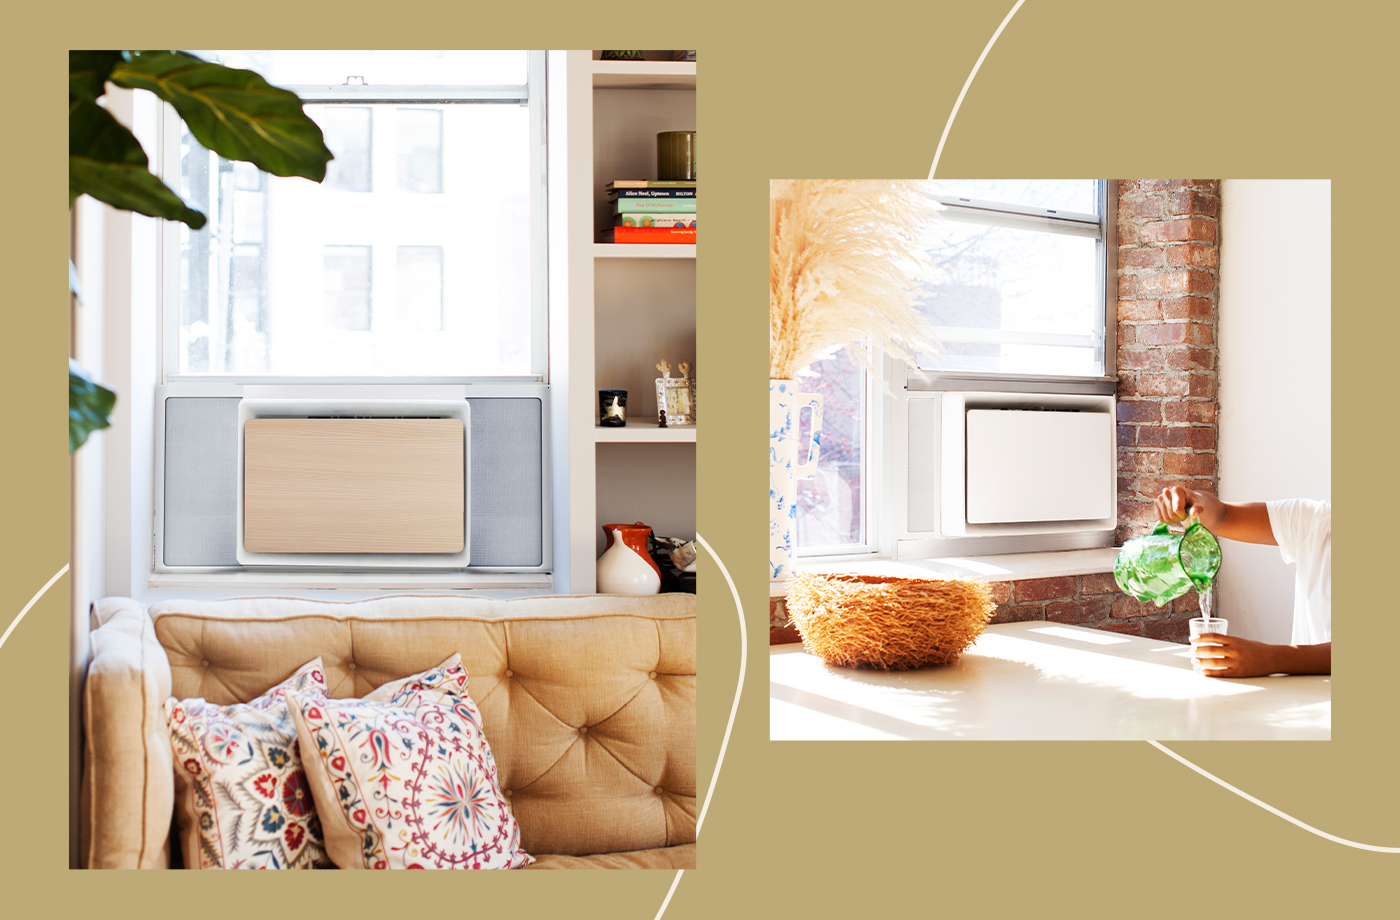 Thumbnail for 5 Aesthetically Pleasing Window Air Conditioners That Get the Job Done and Look Good Doing It